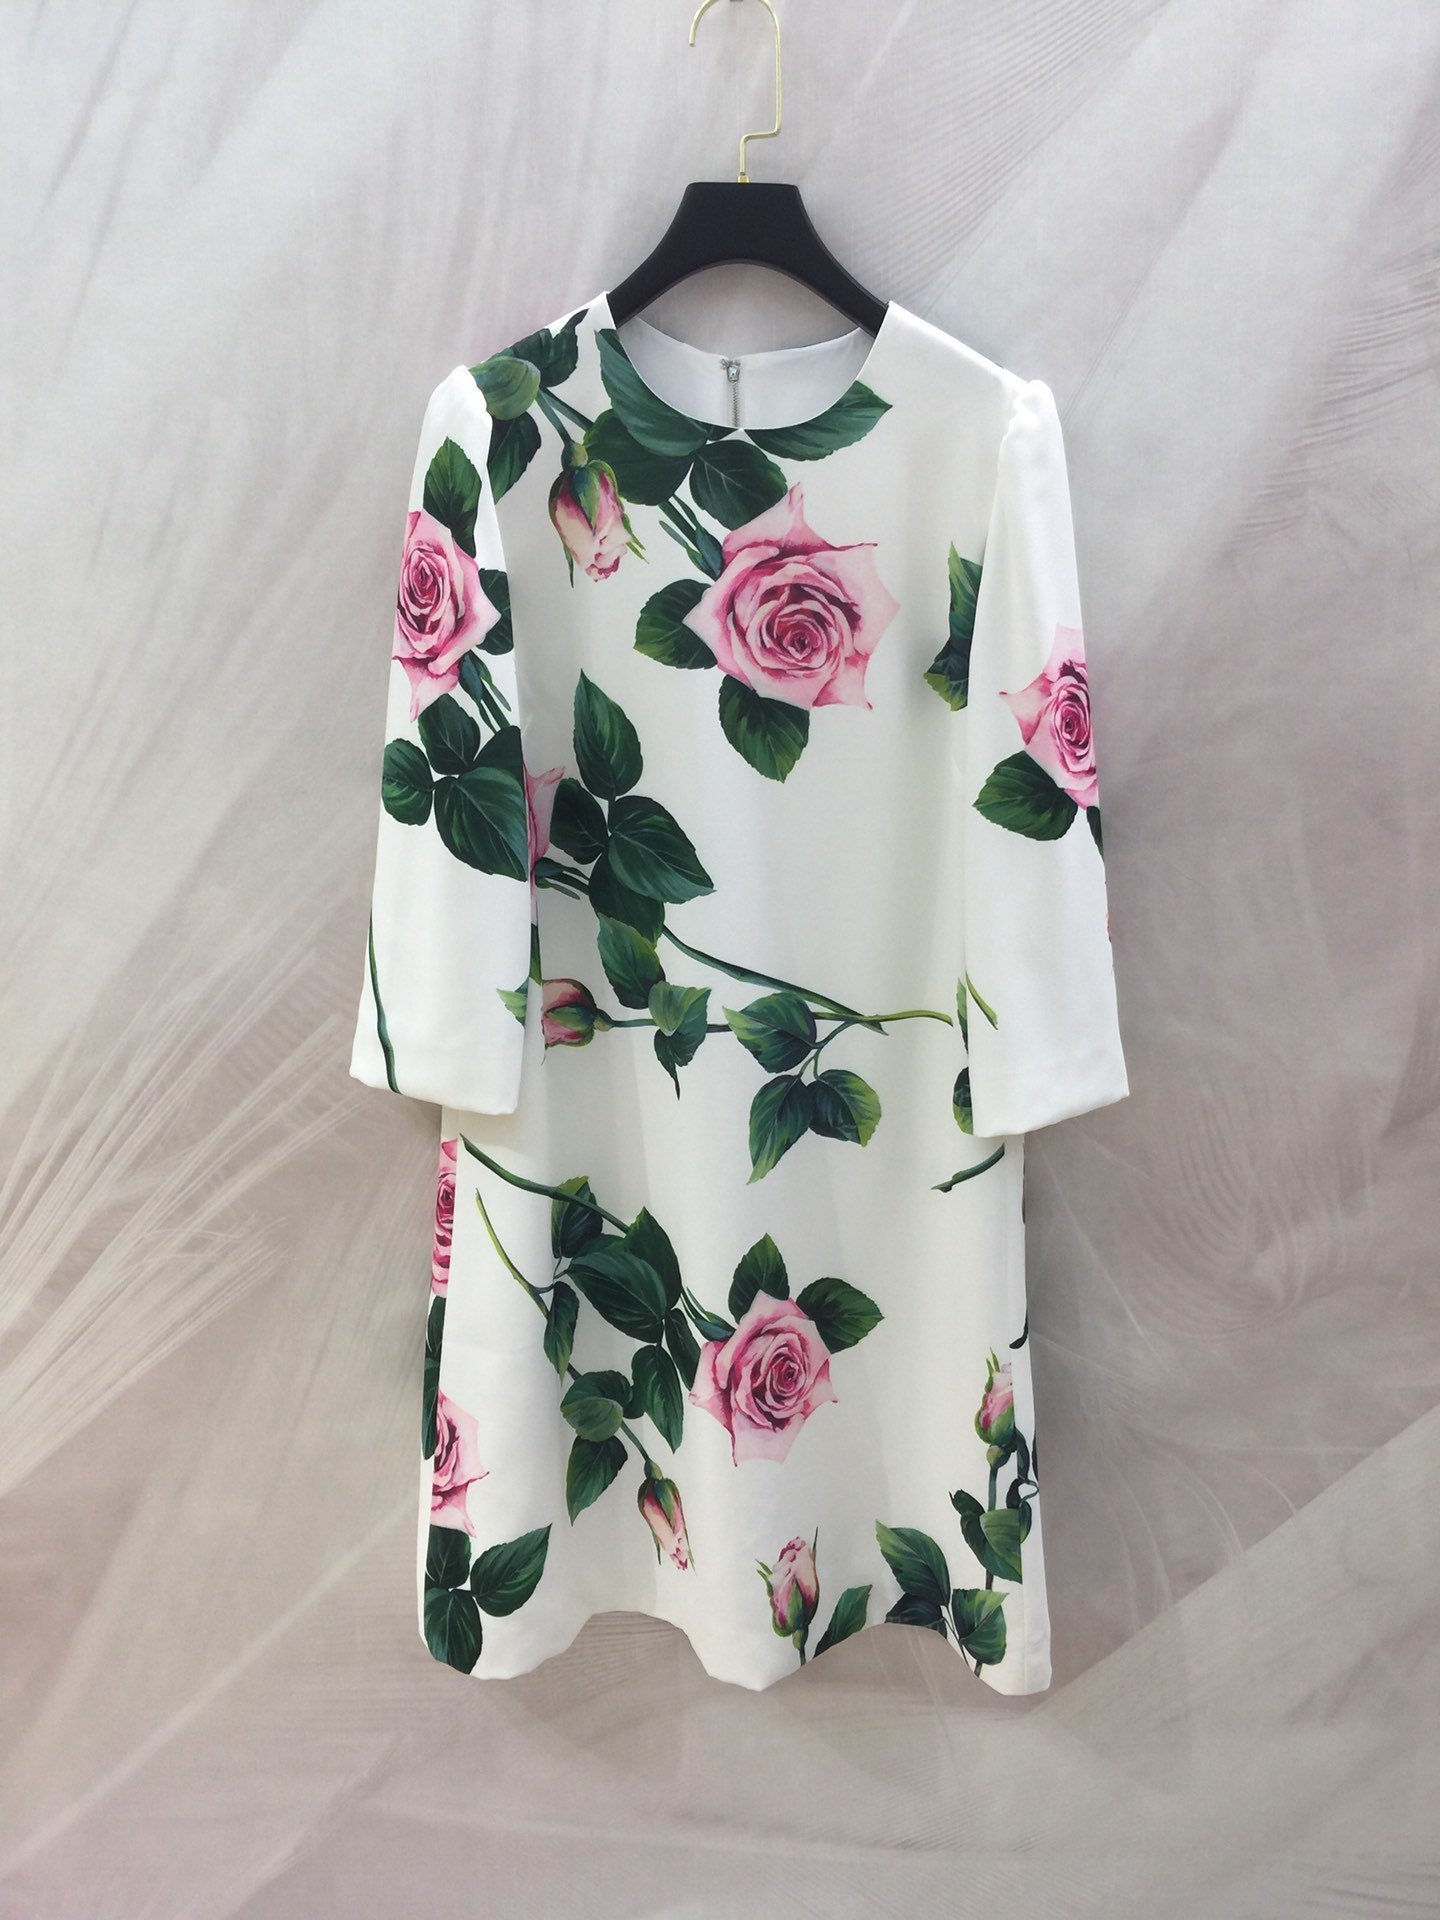 Image 2 - HH040  A new dress for early spring Welcome the coming spring.  flowerDresses   -